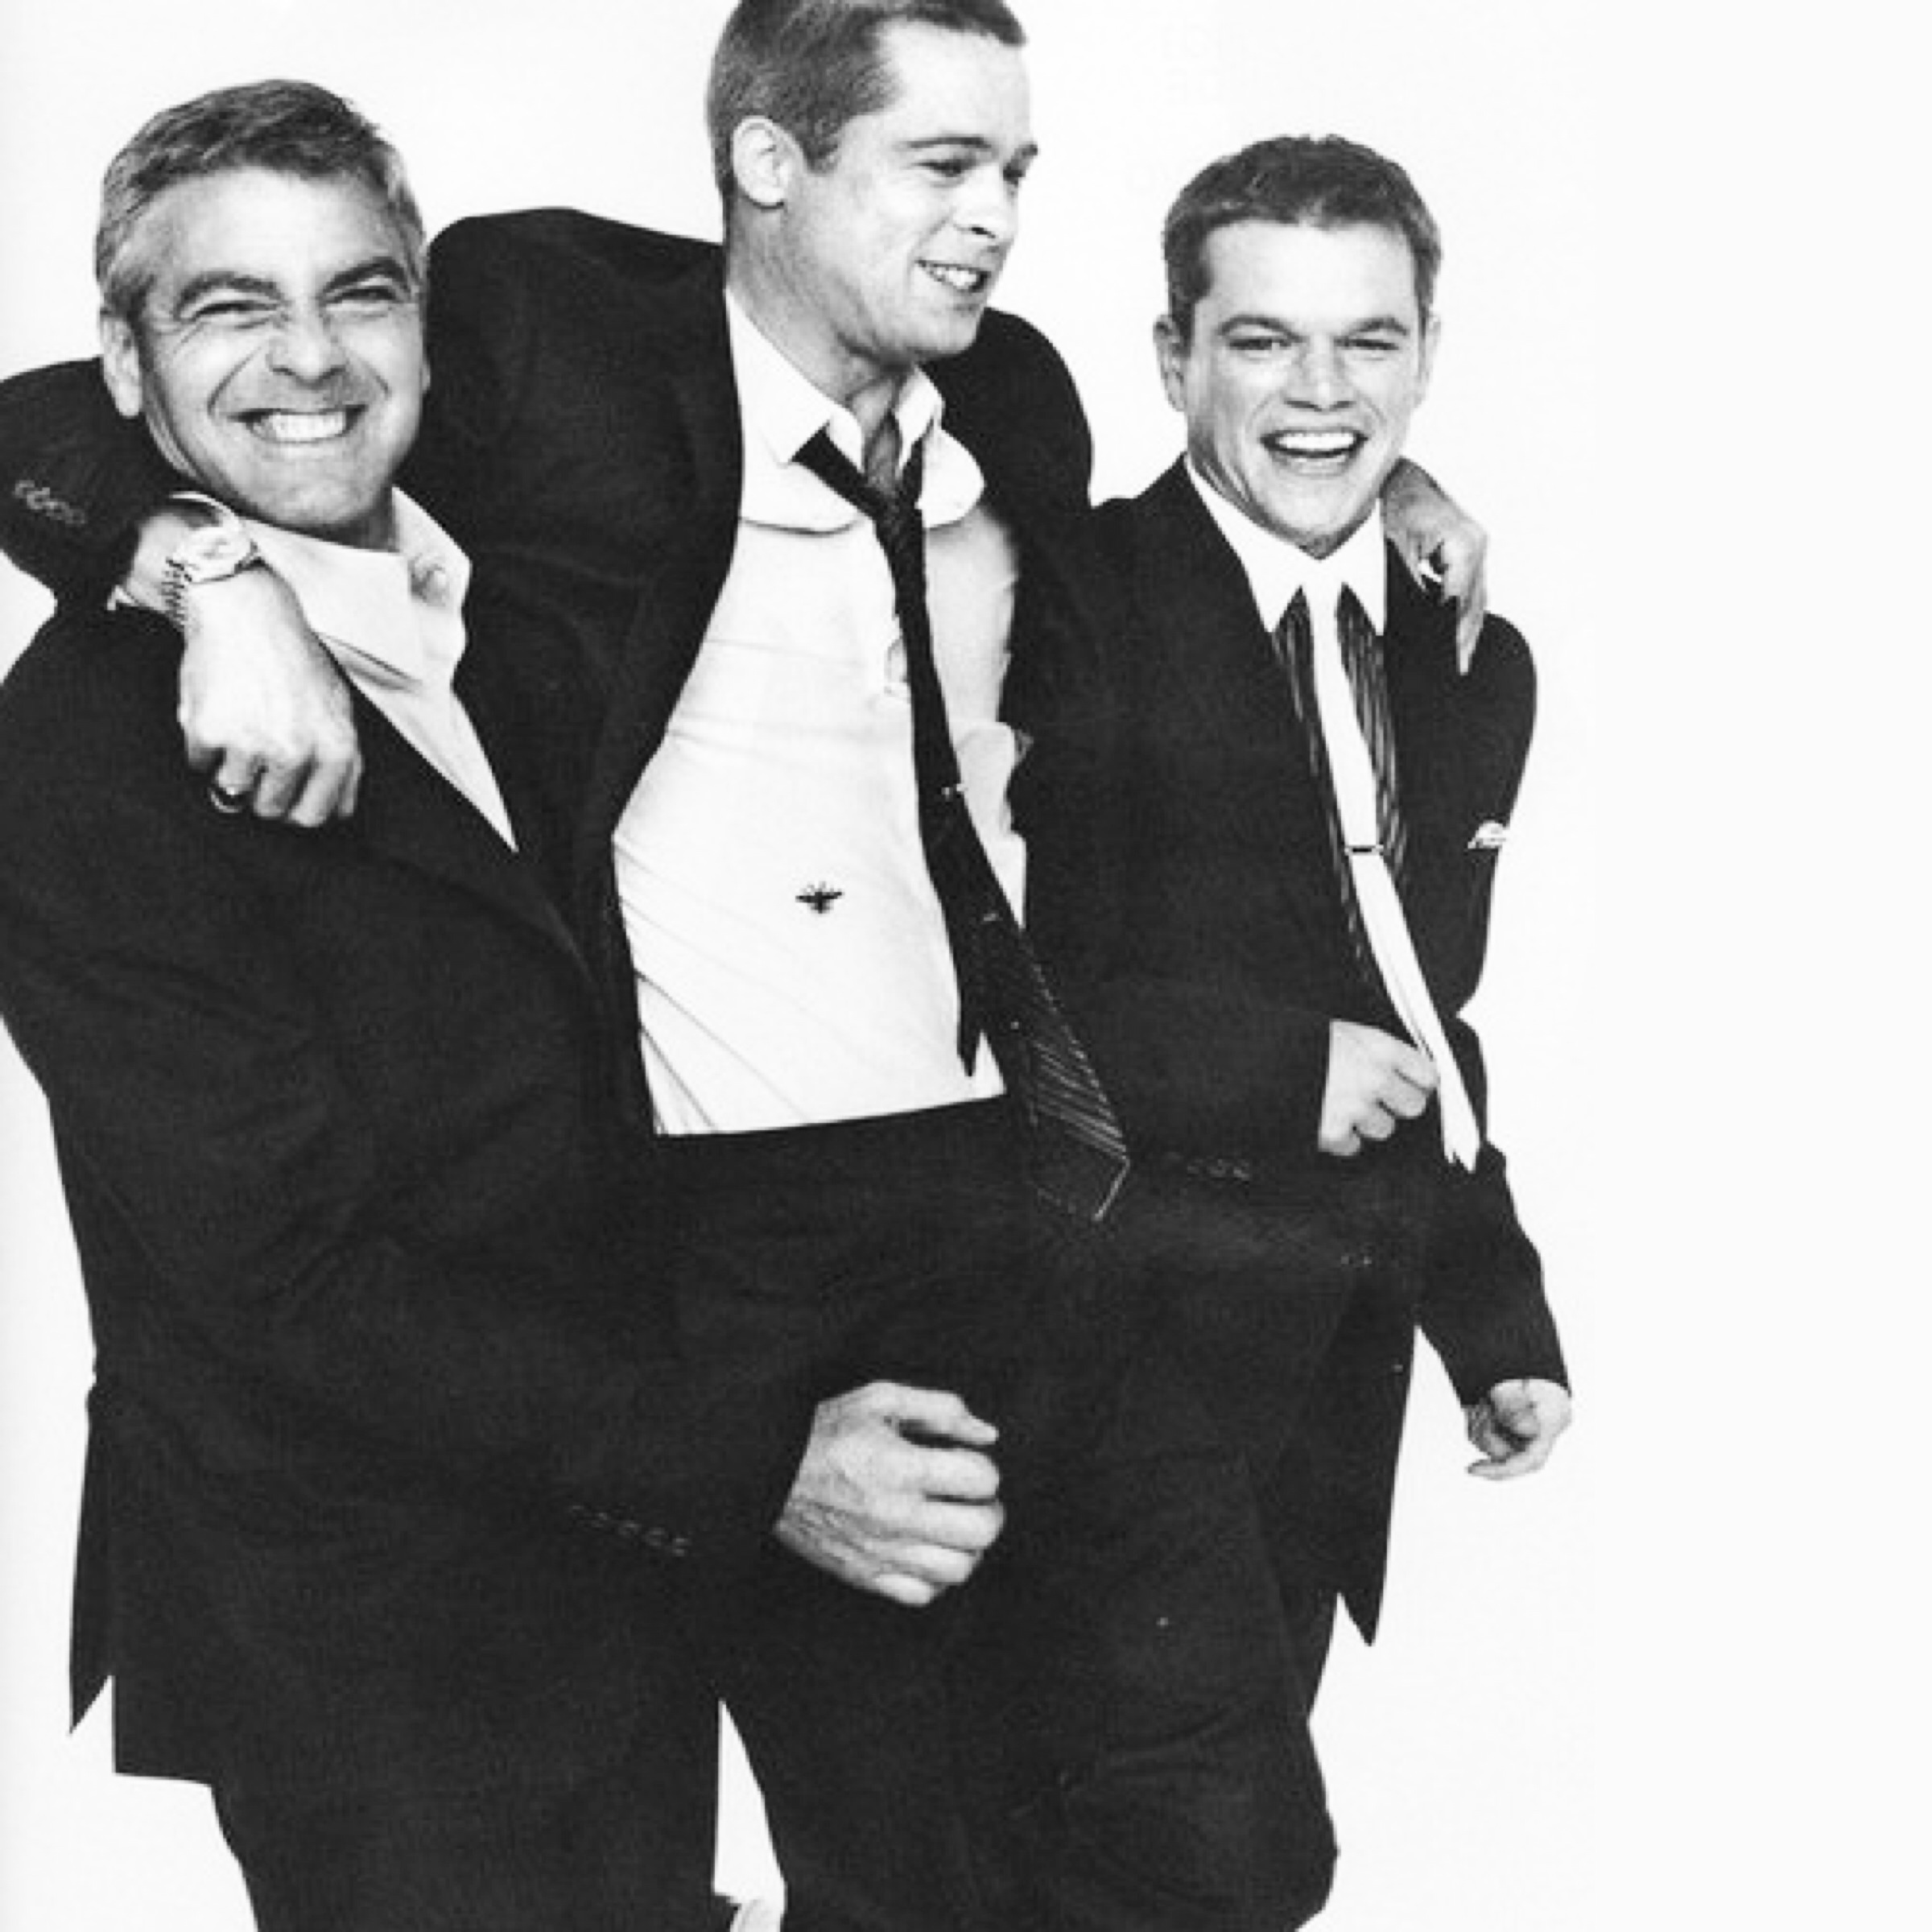 George Clooney, Brad Pitt and Matt Damon || Oceans Eleven